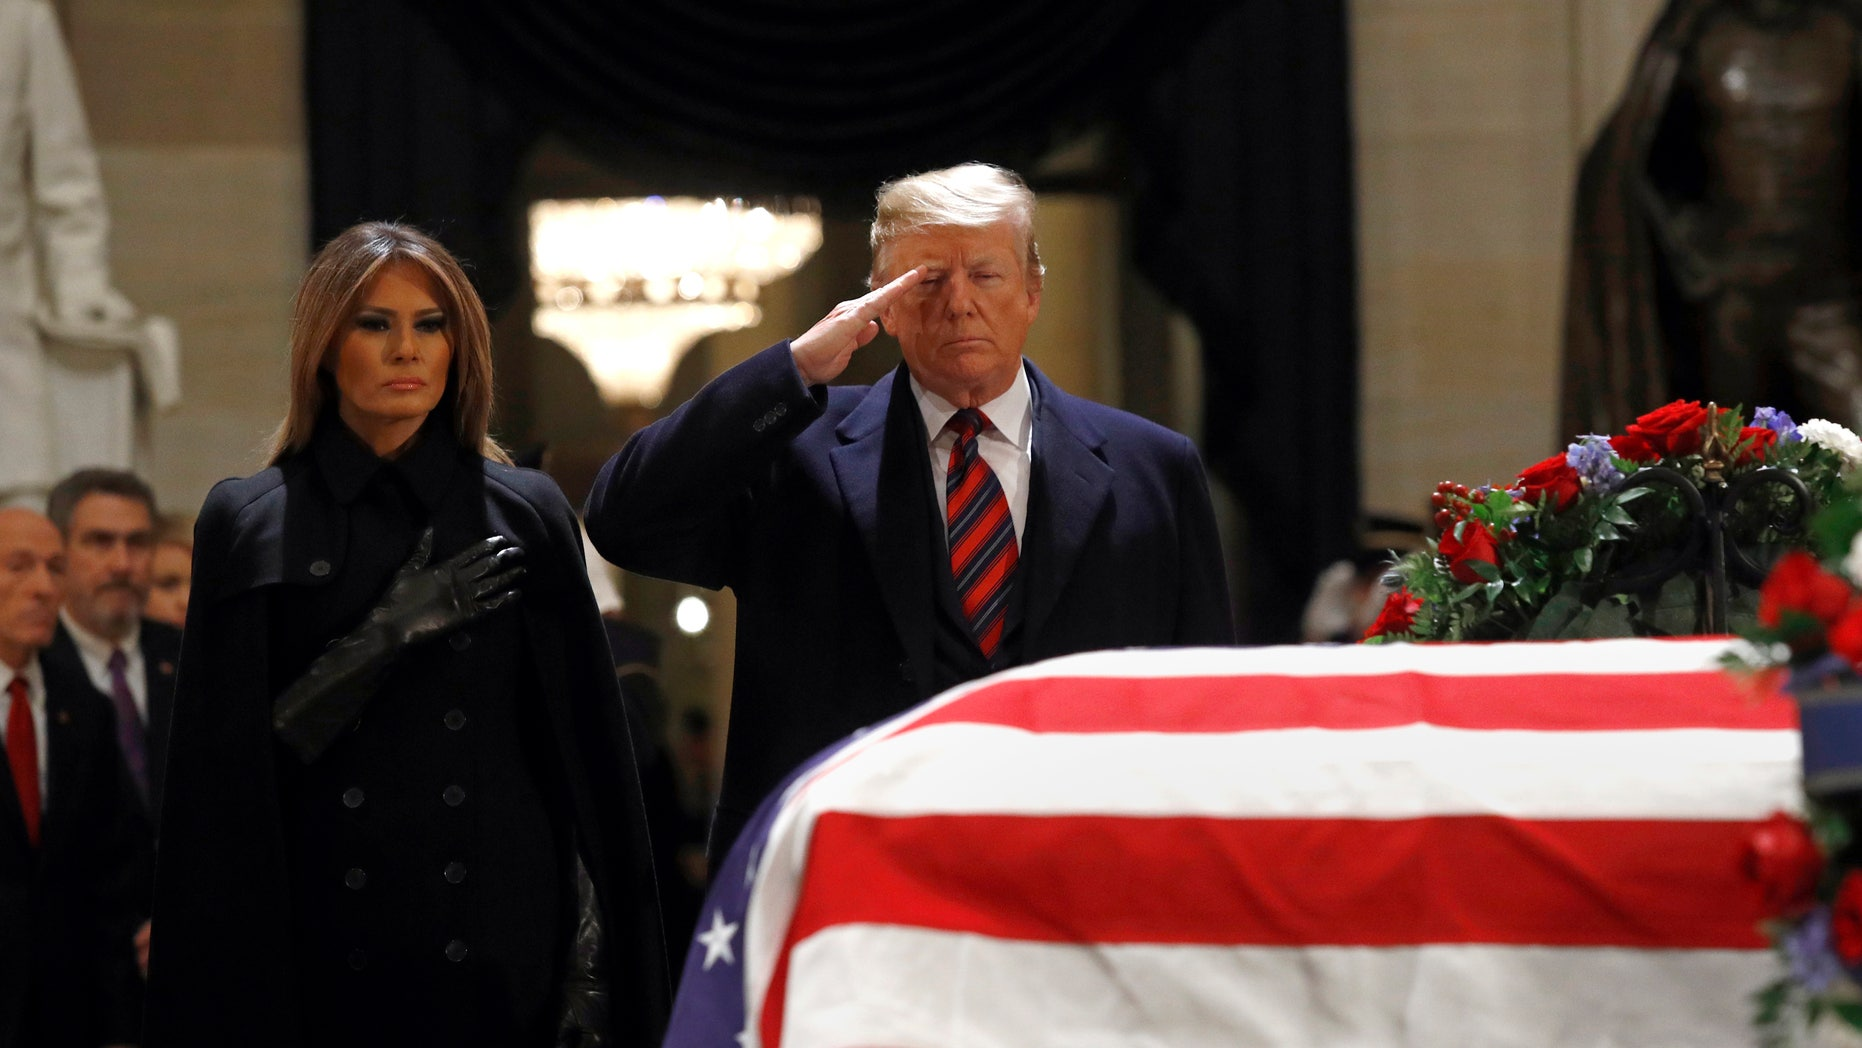 ABC News reporters joked about the future funeral of President Trump during coverage of George H. W. Bush's funeral. (AP Photo/Patrick Semansky)